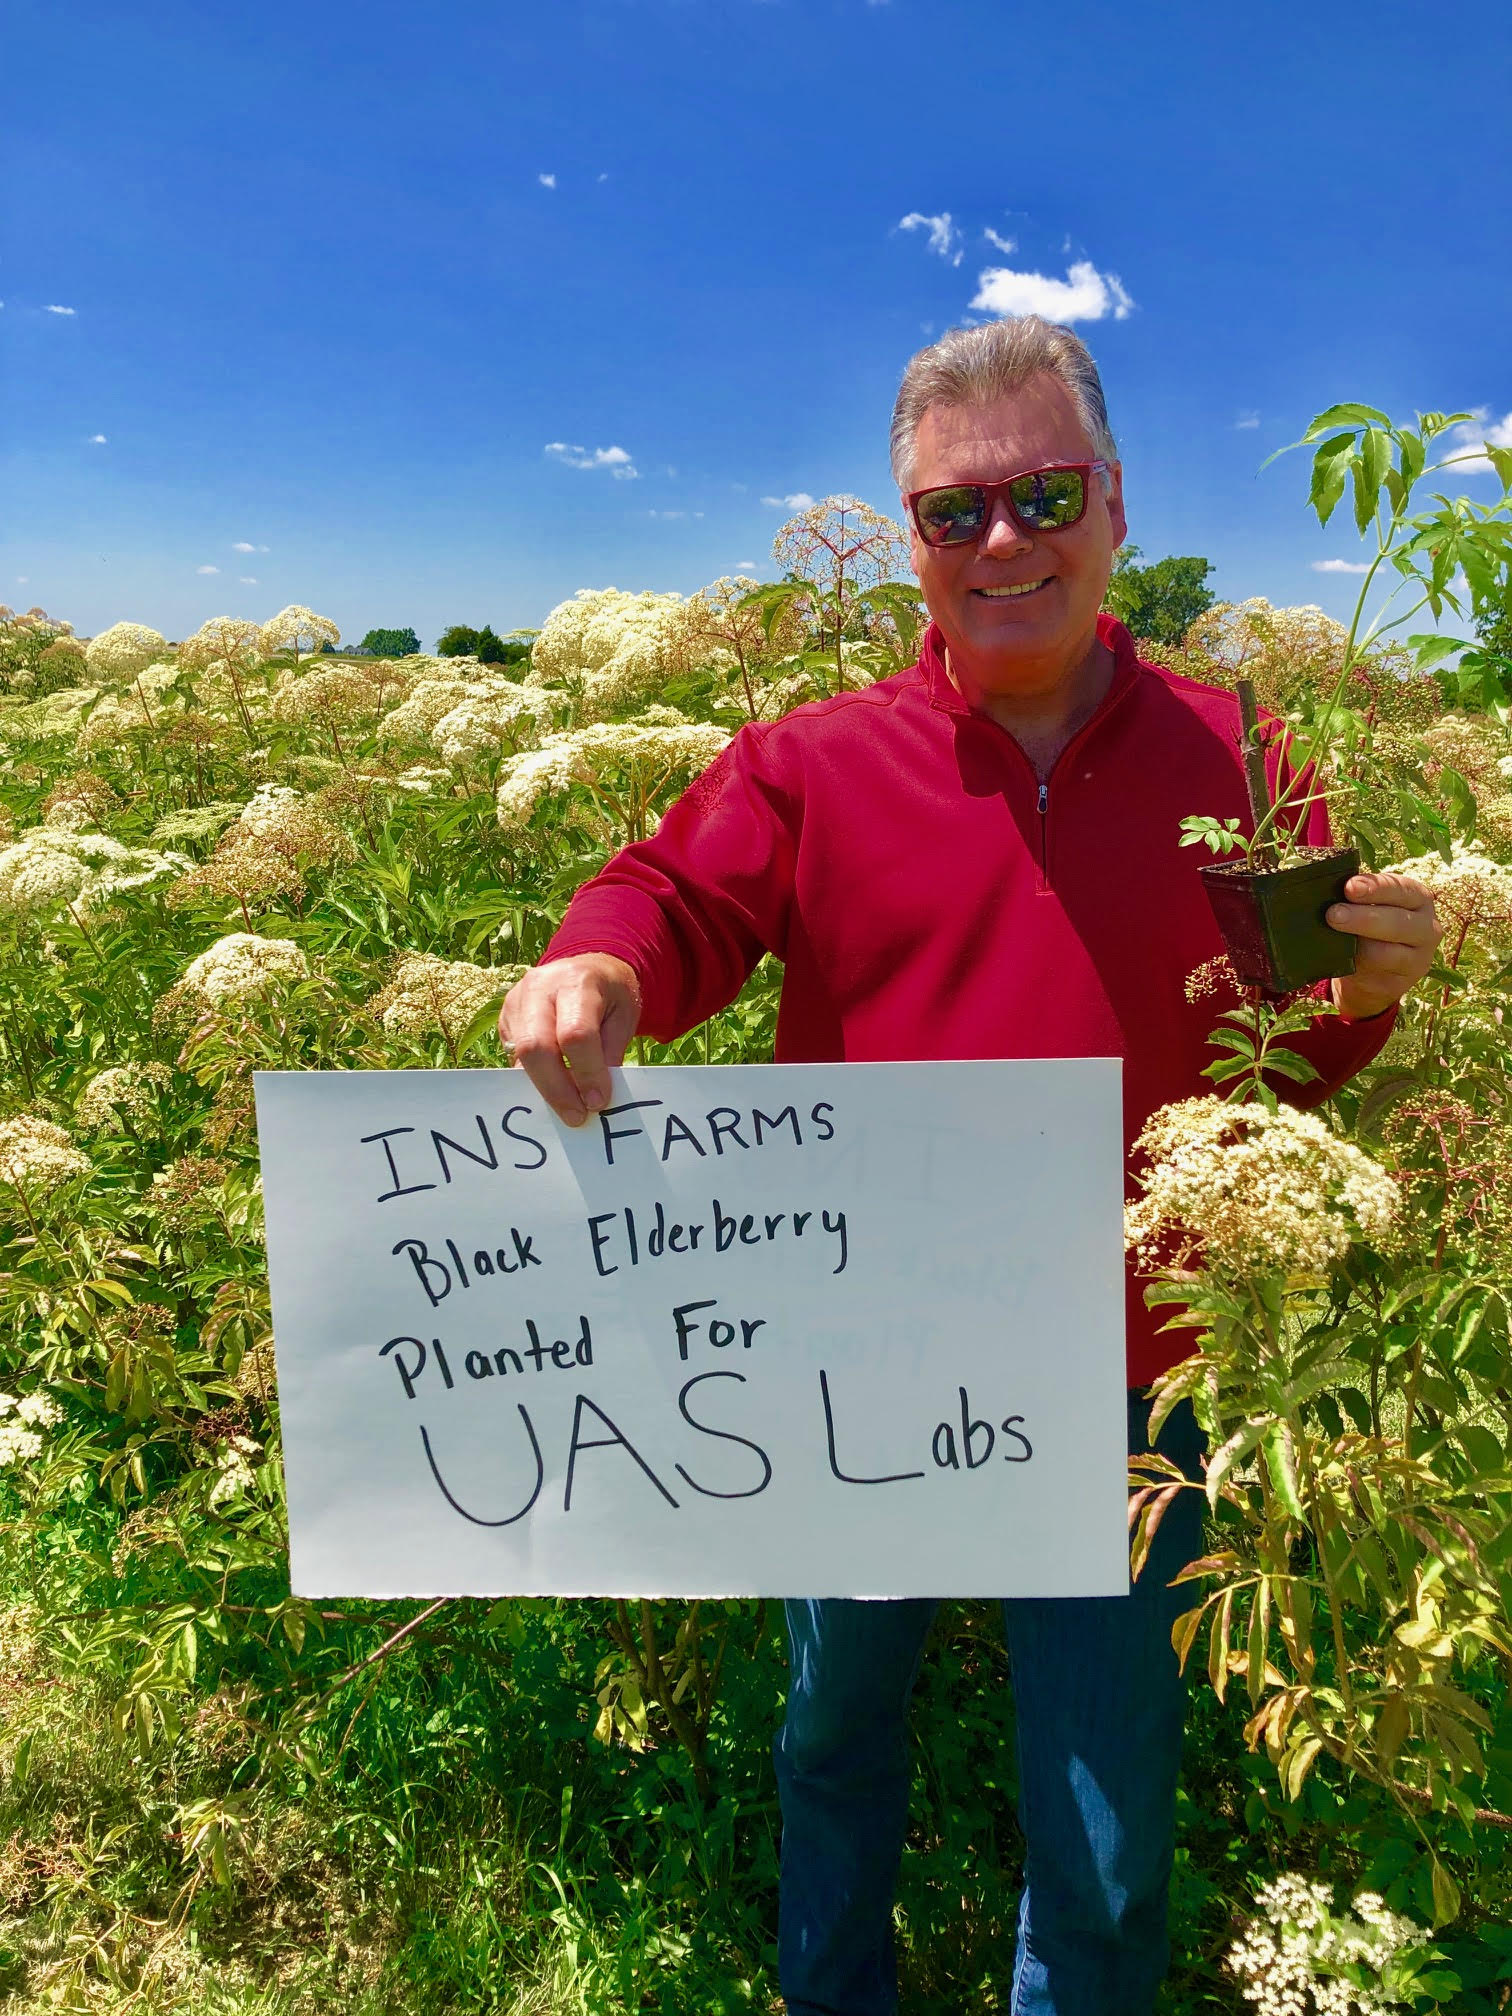 Plant-Elderberry-UAS-Labs.jpg